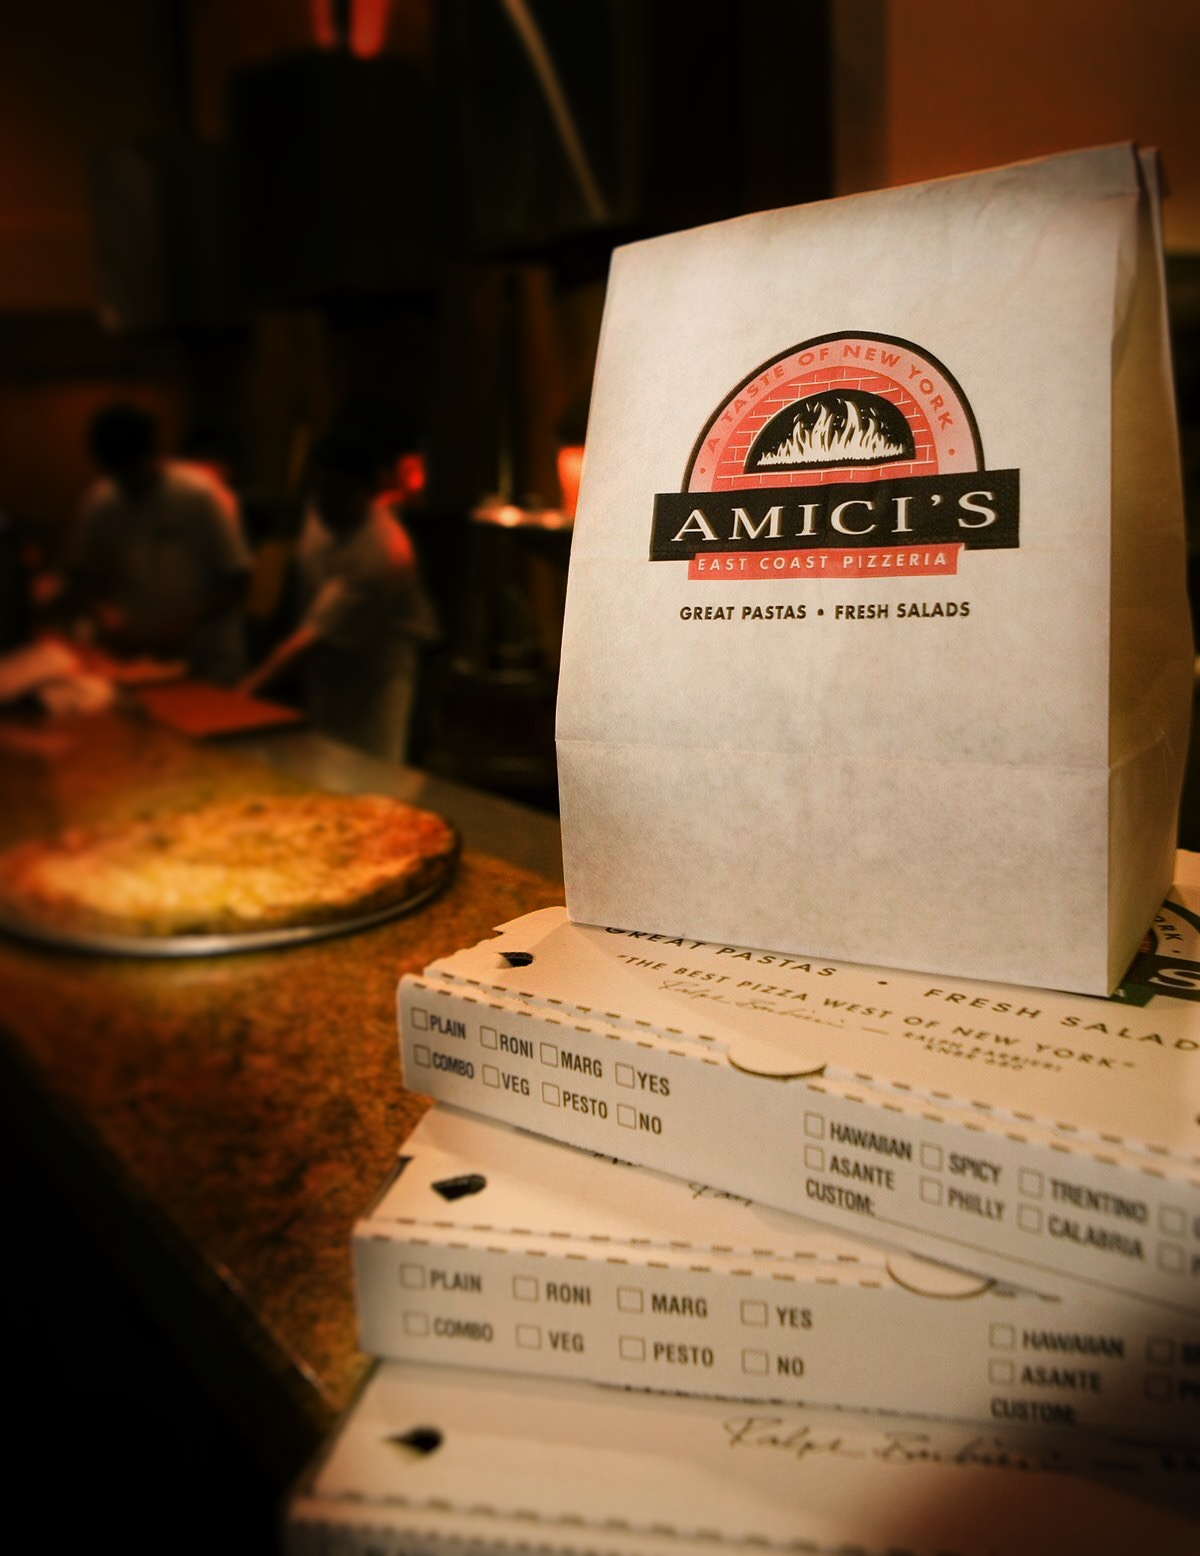 Amici's pizza coupons